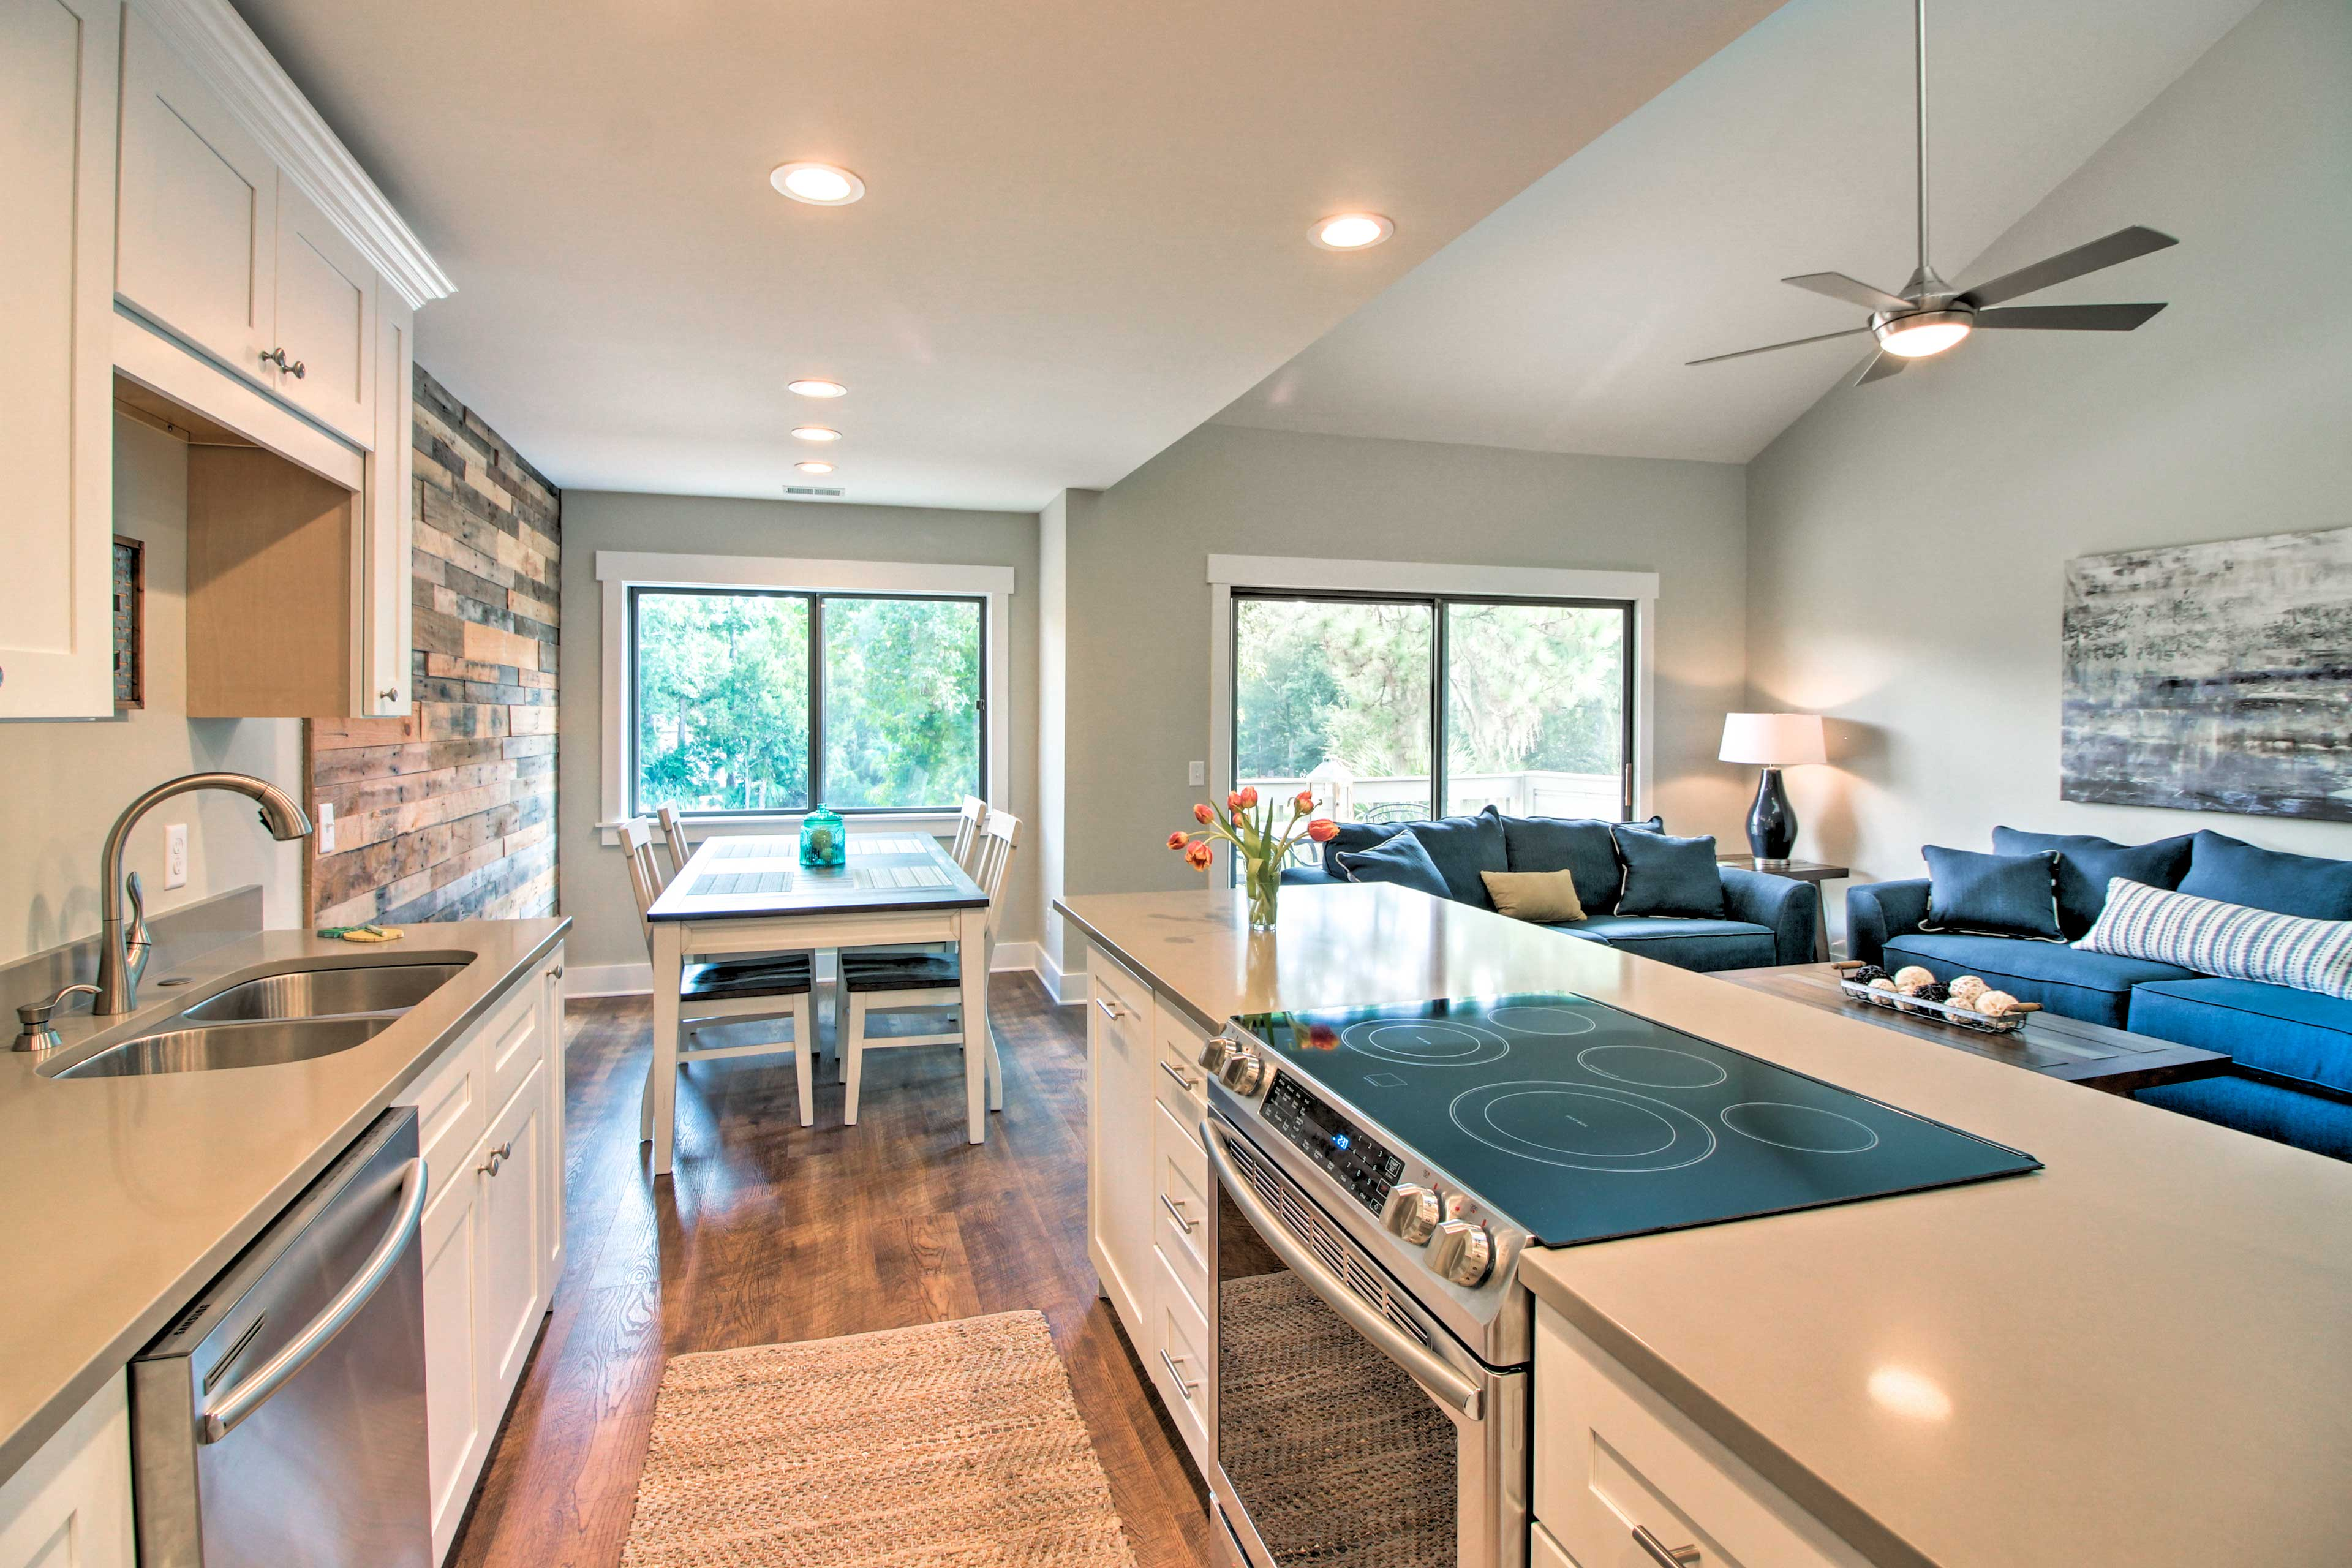 Quartzite countertops and stainless steel appliances make cooking a breeze.